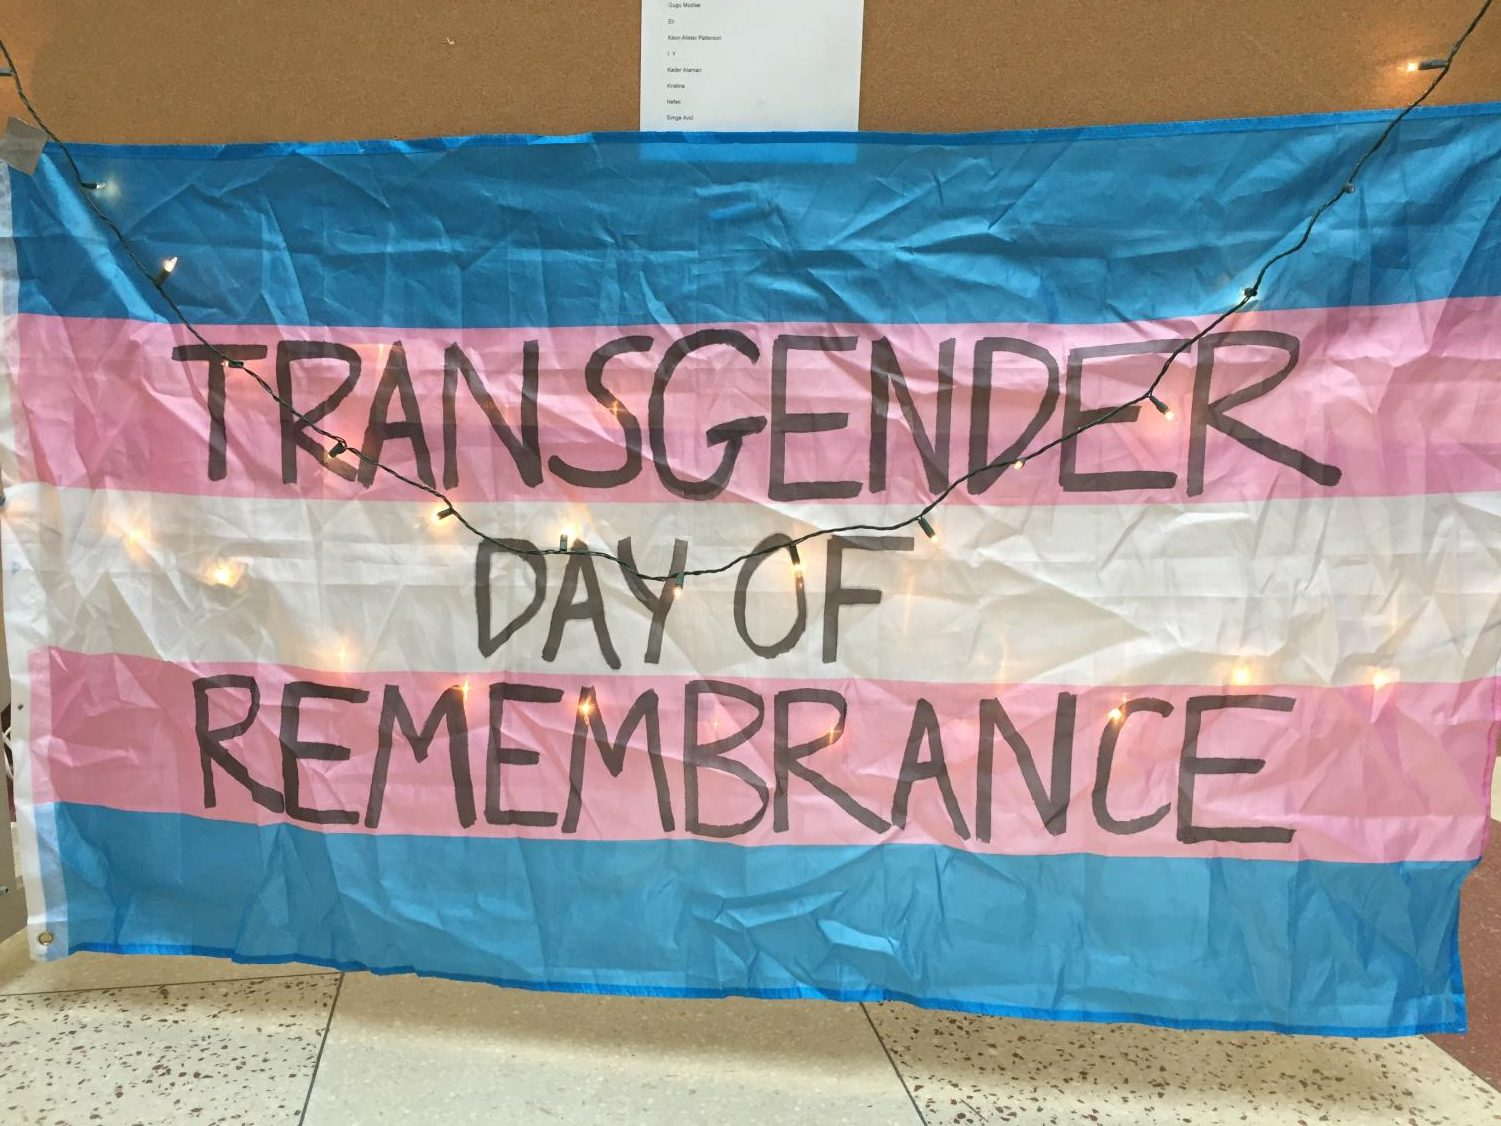 A Transgender Day of Remembrance vigil was held on Thursday, Nov. 29 during X block in the atrium. Transgender Day of Remembrance was first initiated in 1999 to acknowledge the violent deaths of transgender people all around the world.